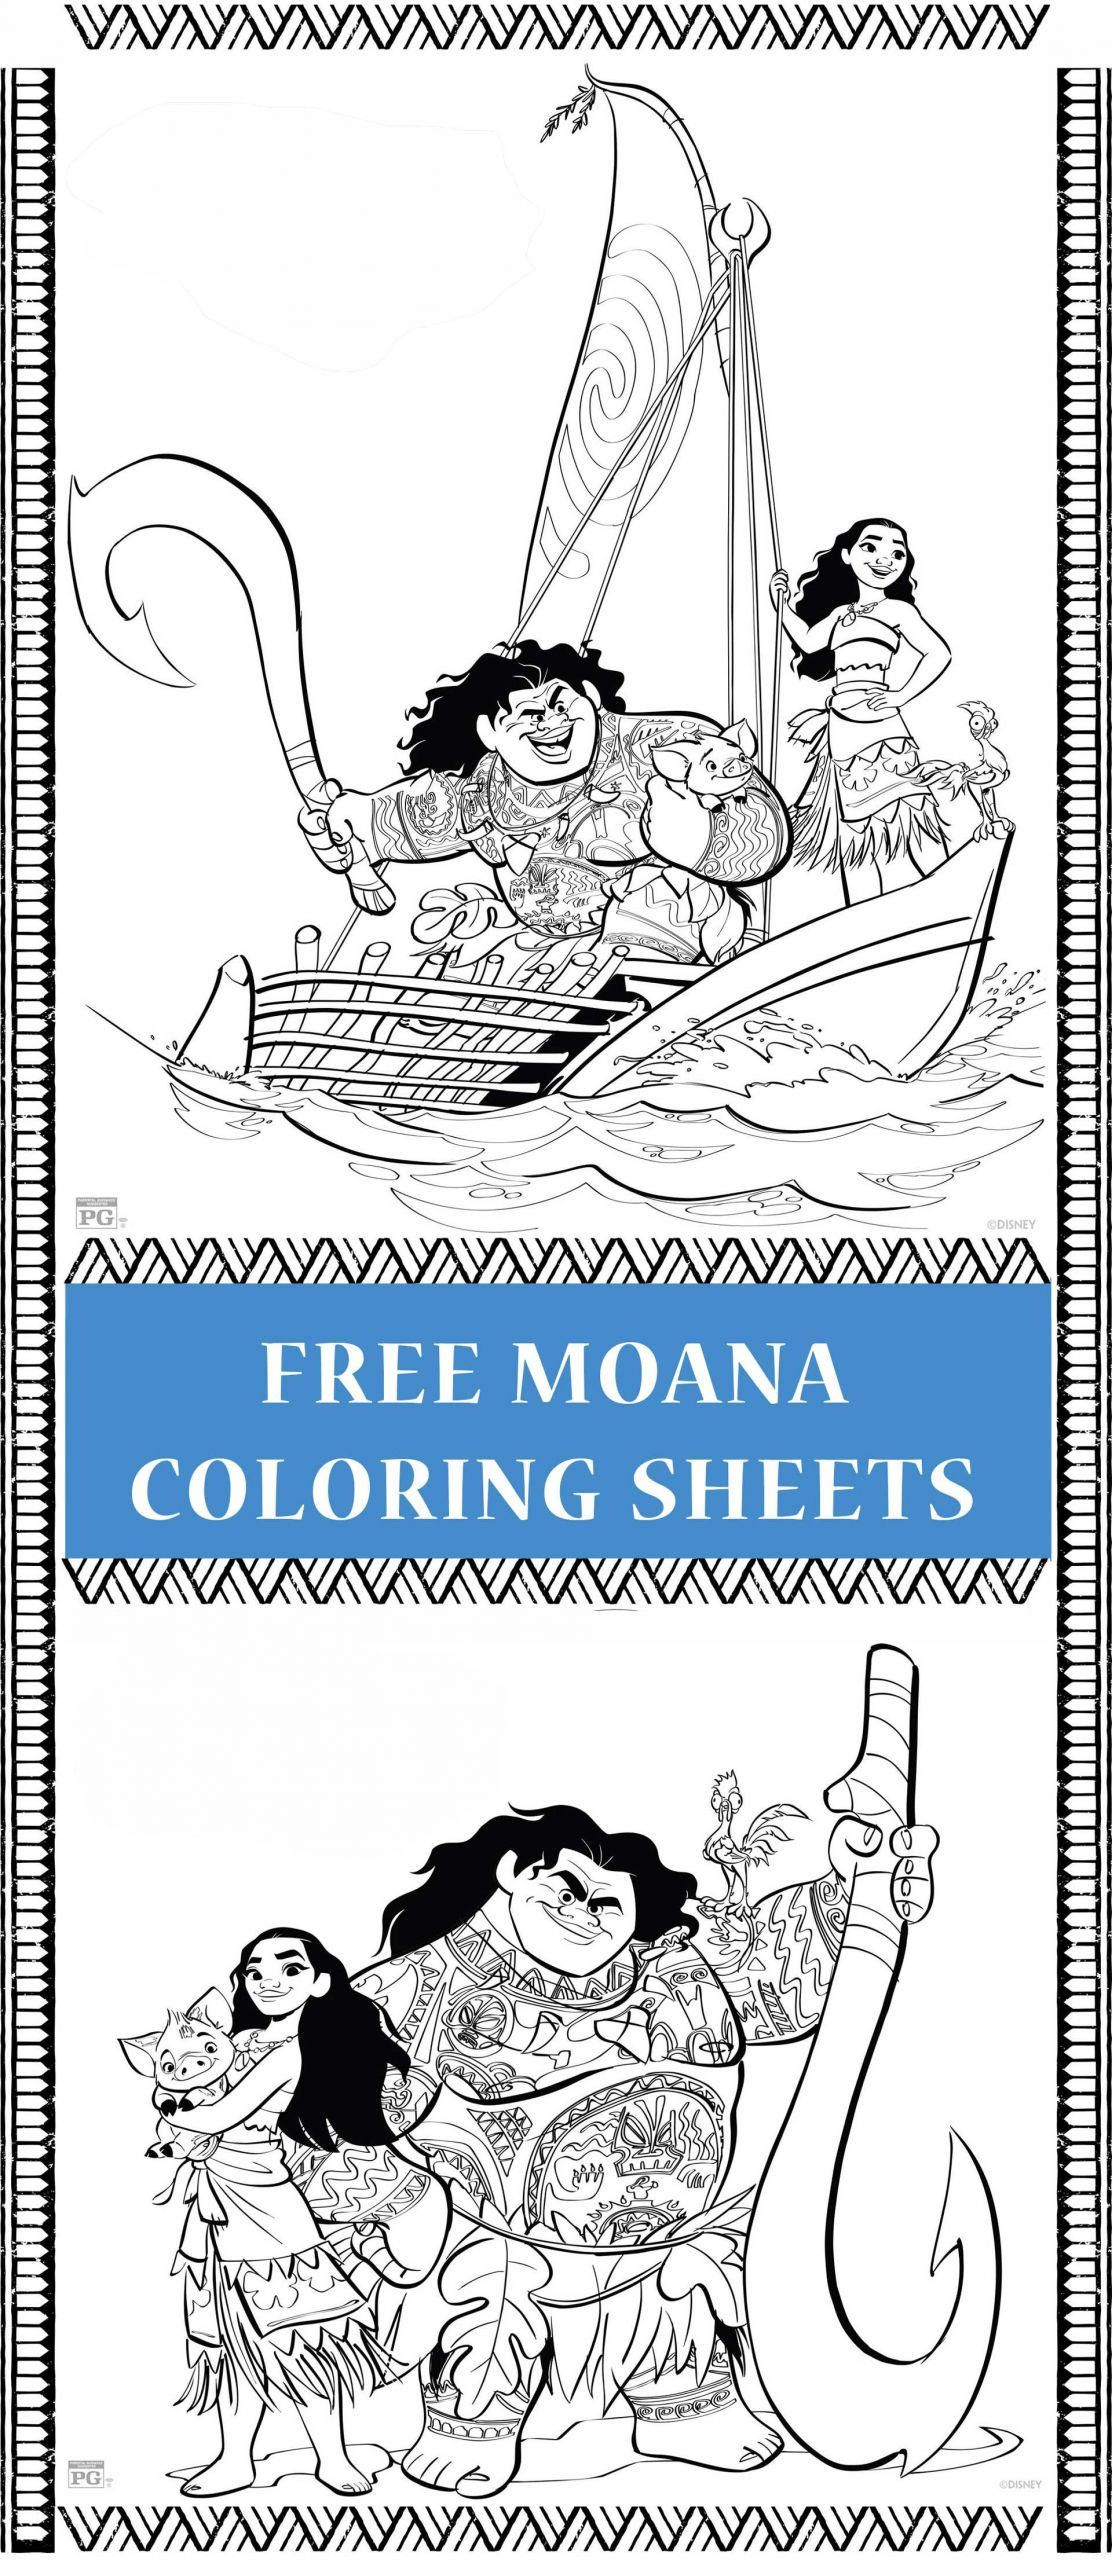 Moana Baby Coloring Pages  Free printable Moana coloring pages & activity sheets for